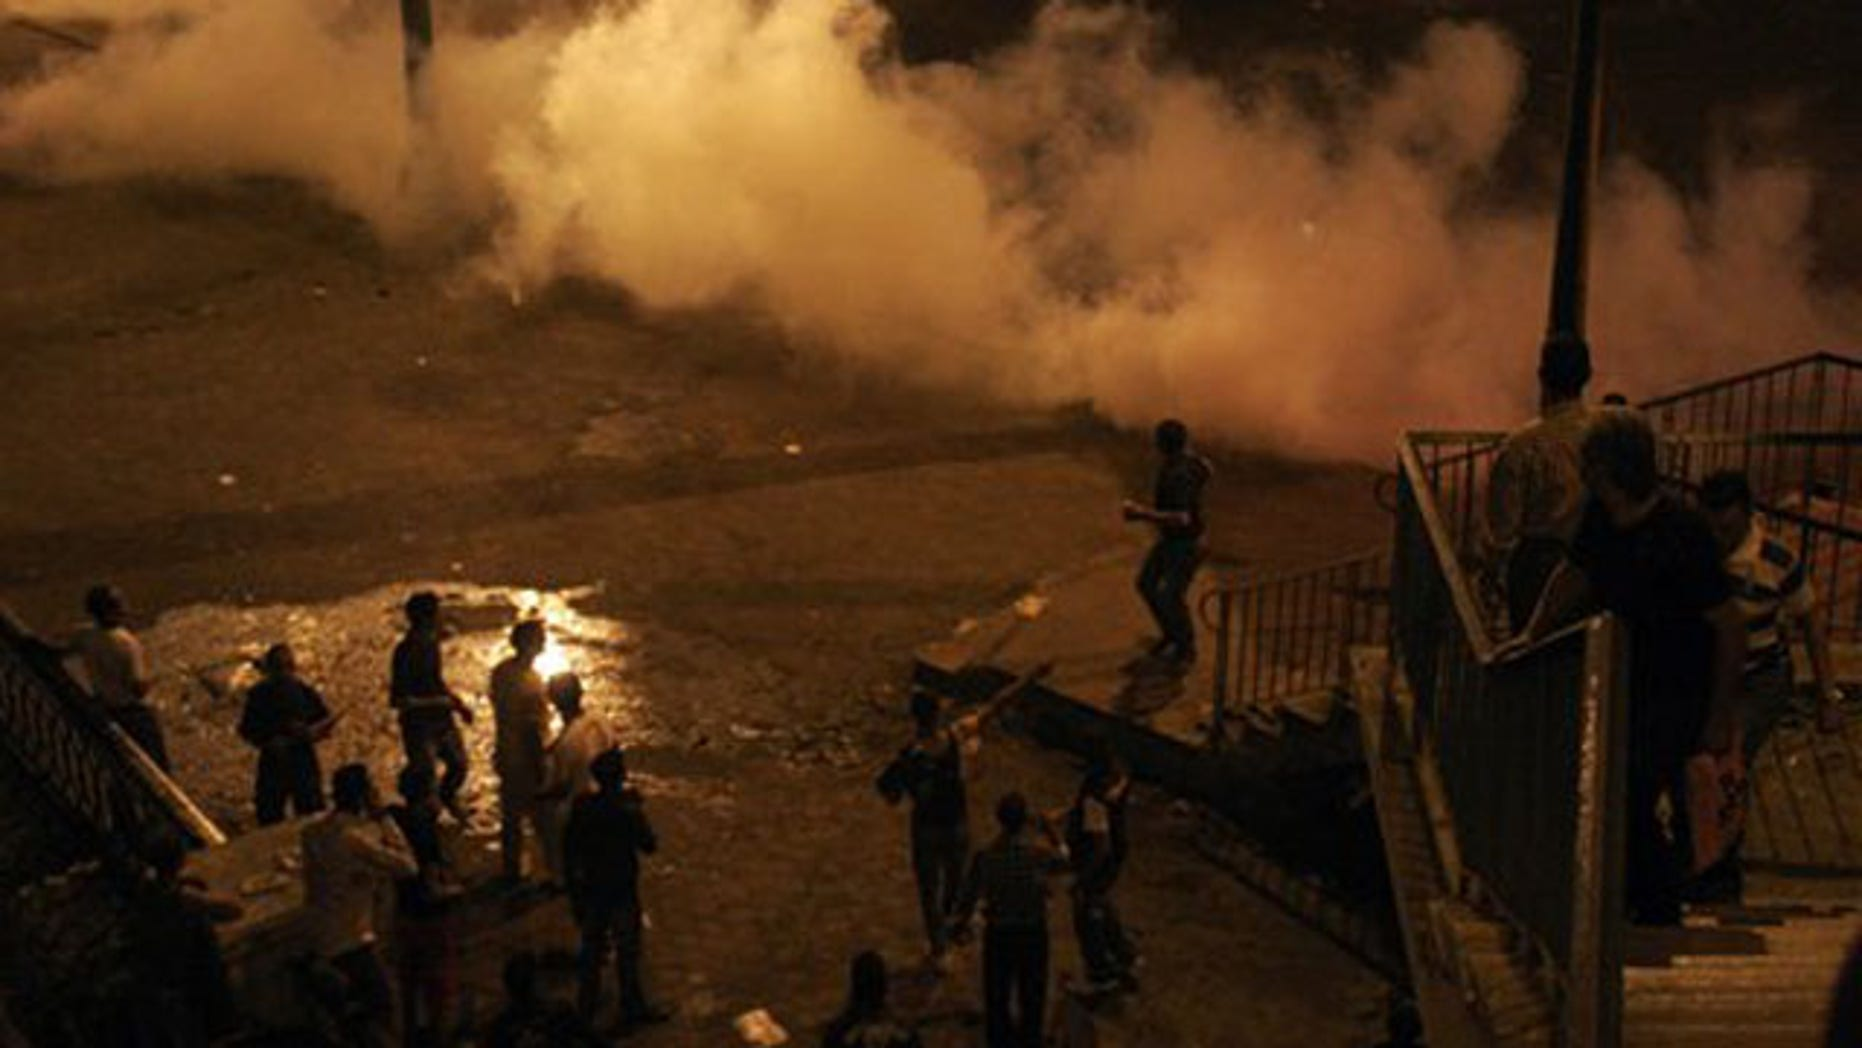 Smoke from tear gas fills the street as protesters clash with Egyptian security forces in Cairo Egypt, Sunday, Oct. 9, 2011.